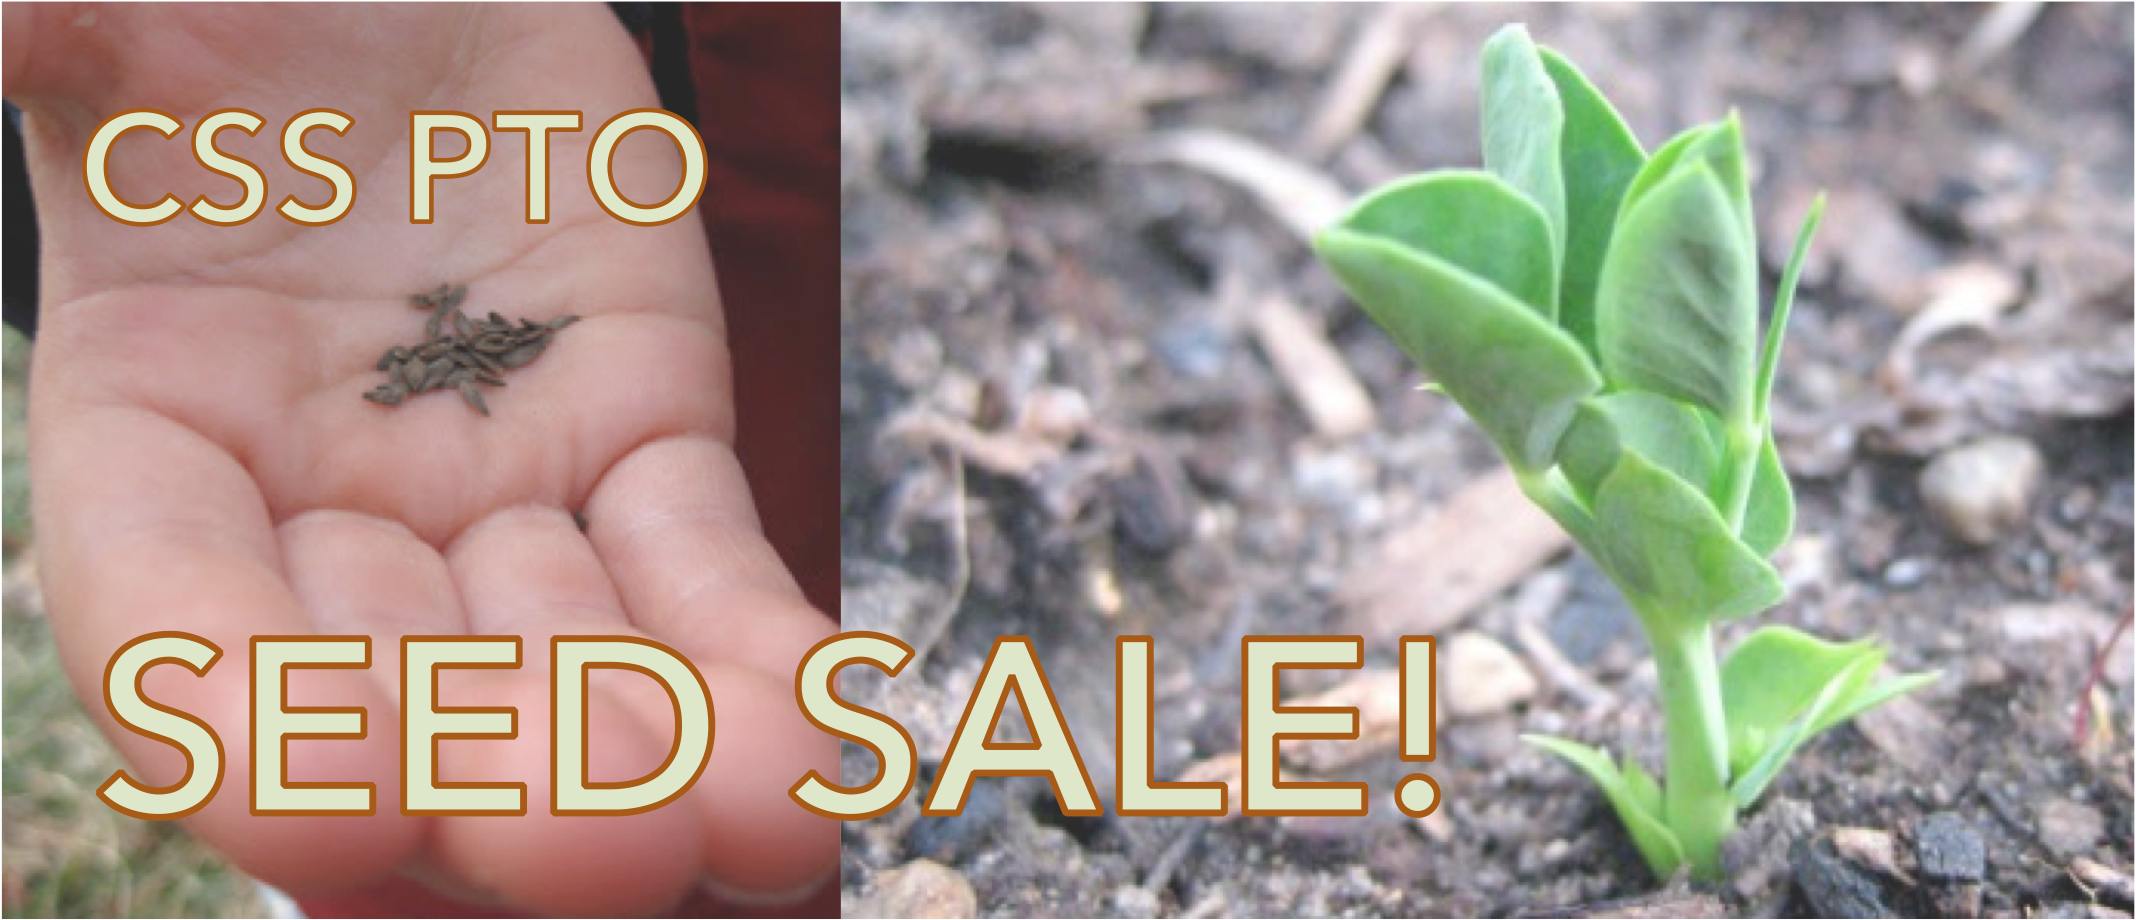 Buy seeds and support PTO!